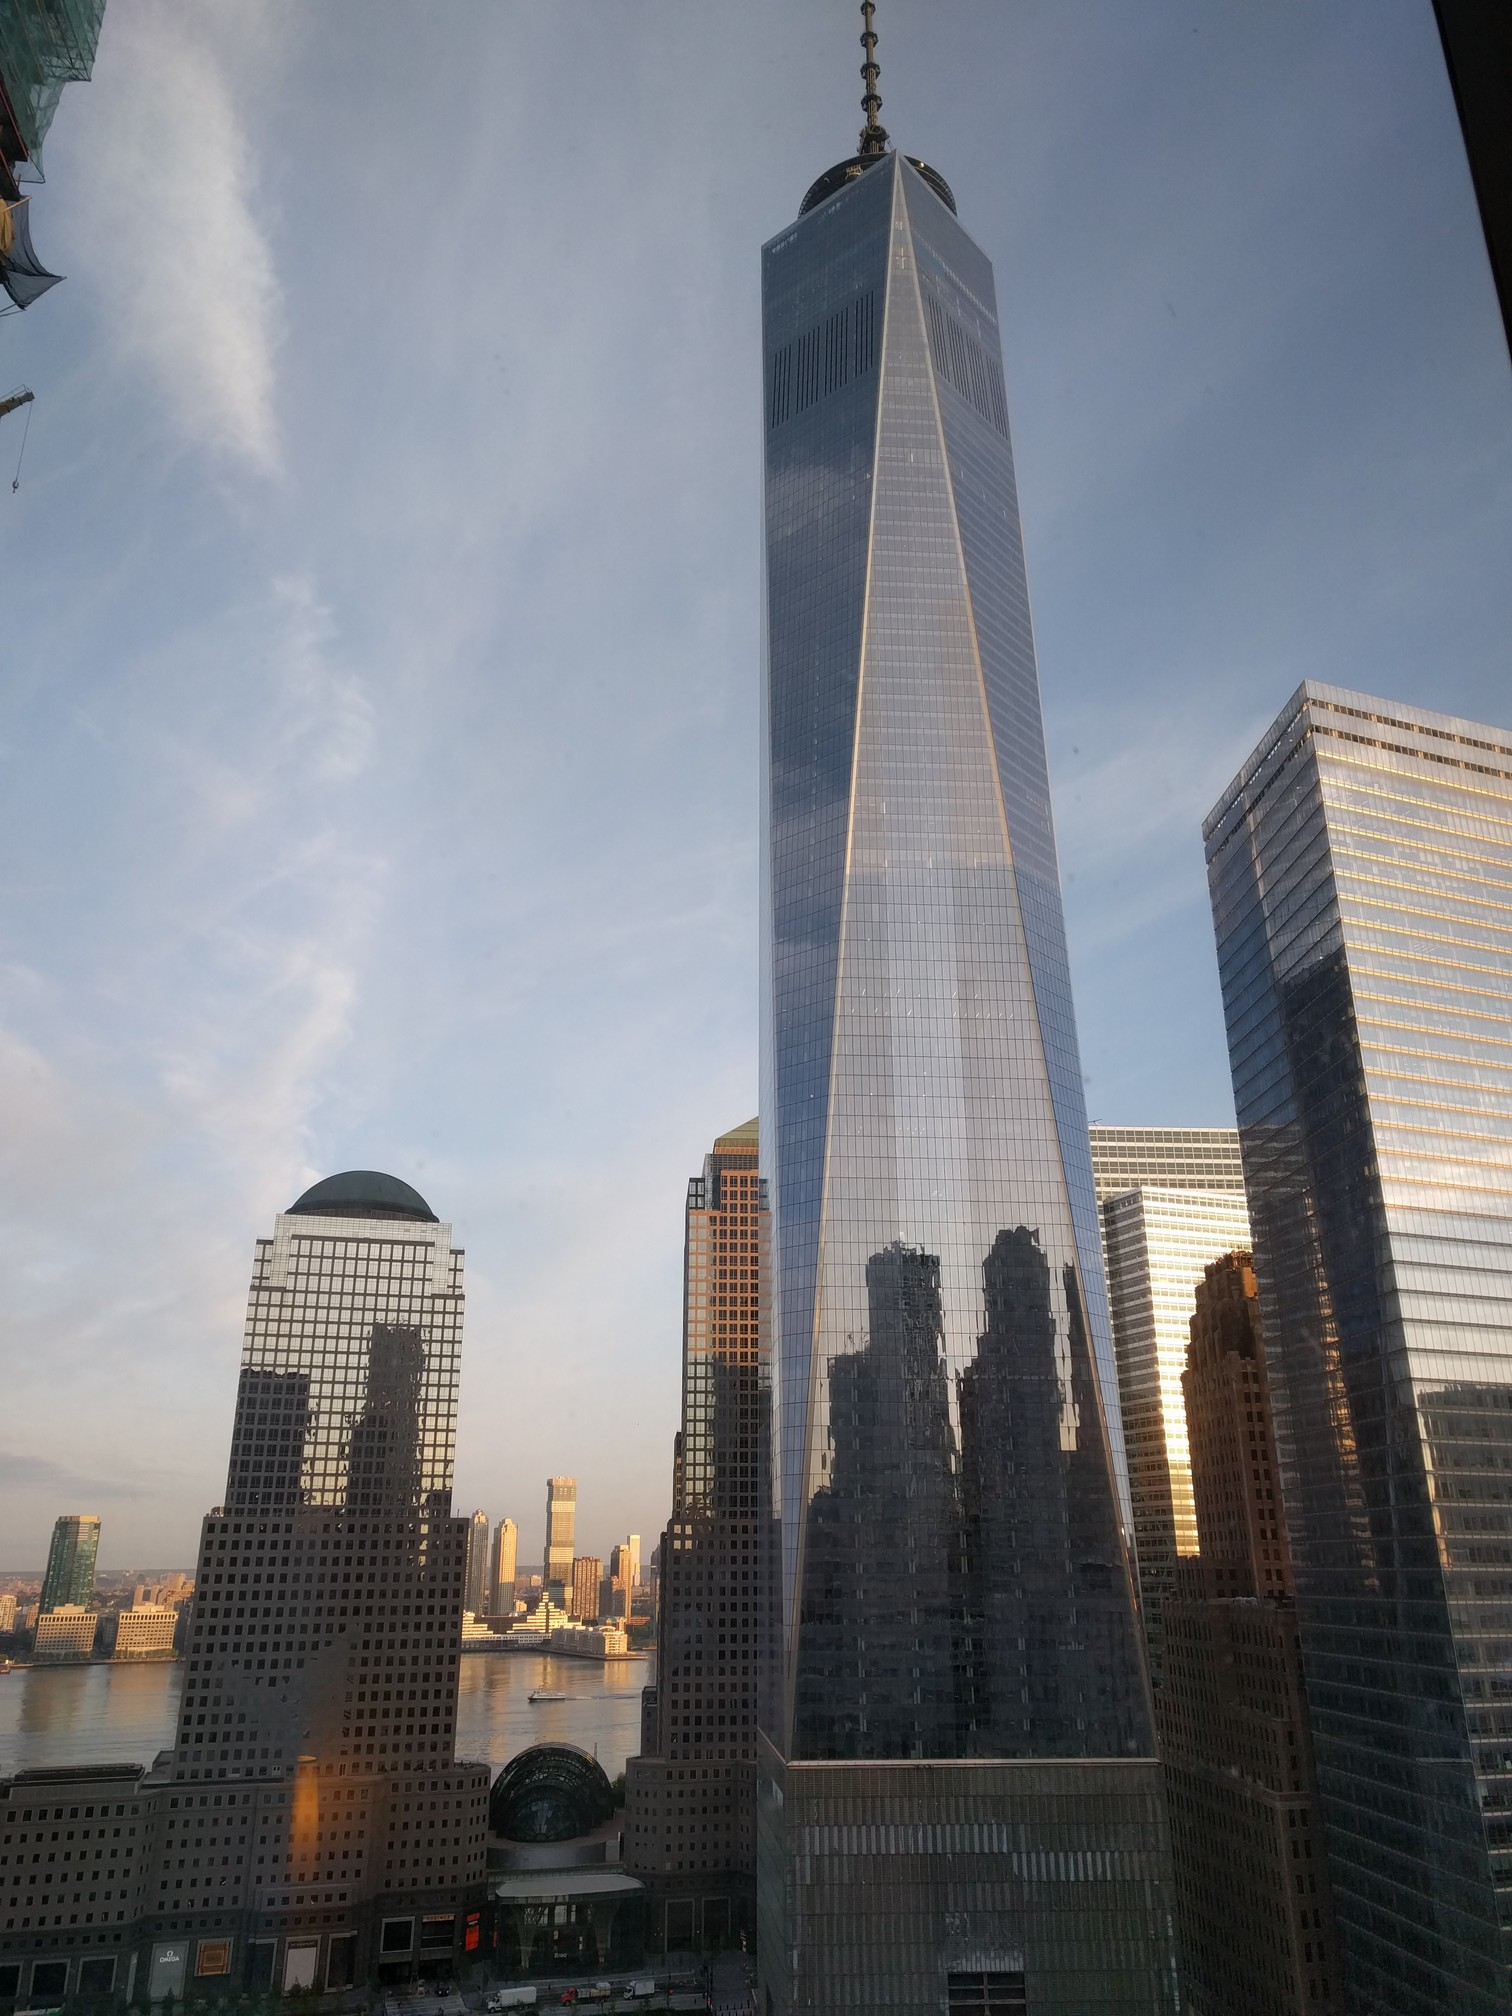 ExifTest/src/main/assets/FreedomTower-Morning.jpg